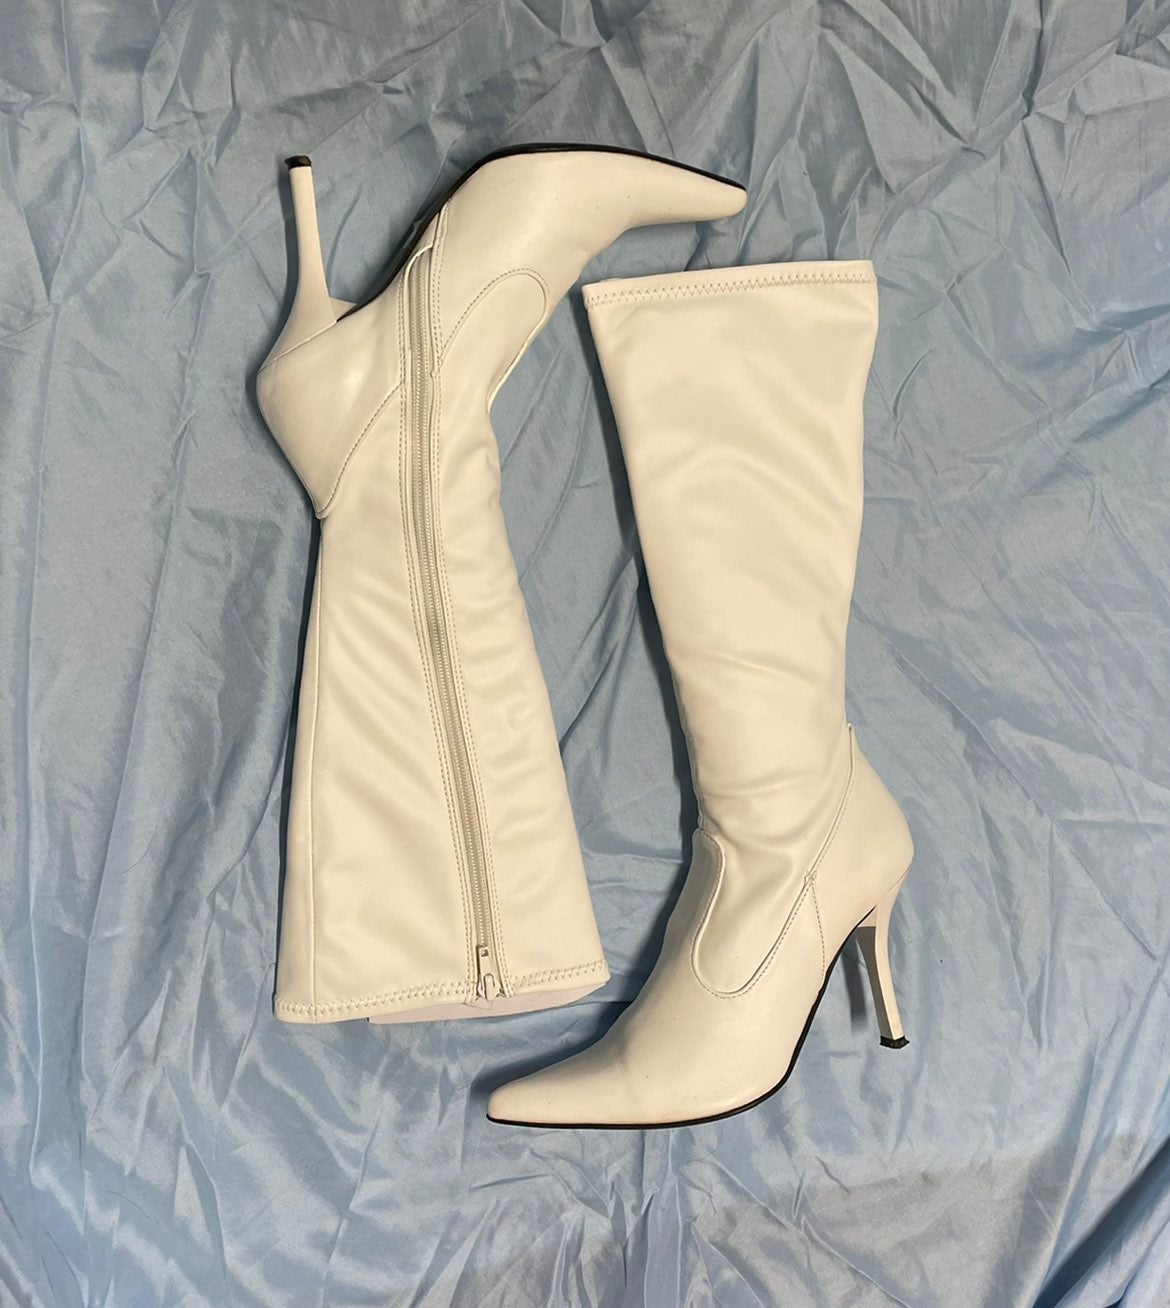 Vintage white pointed boots